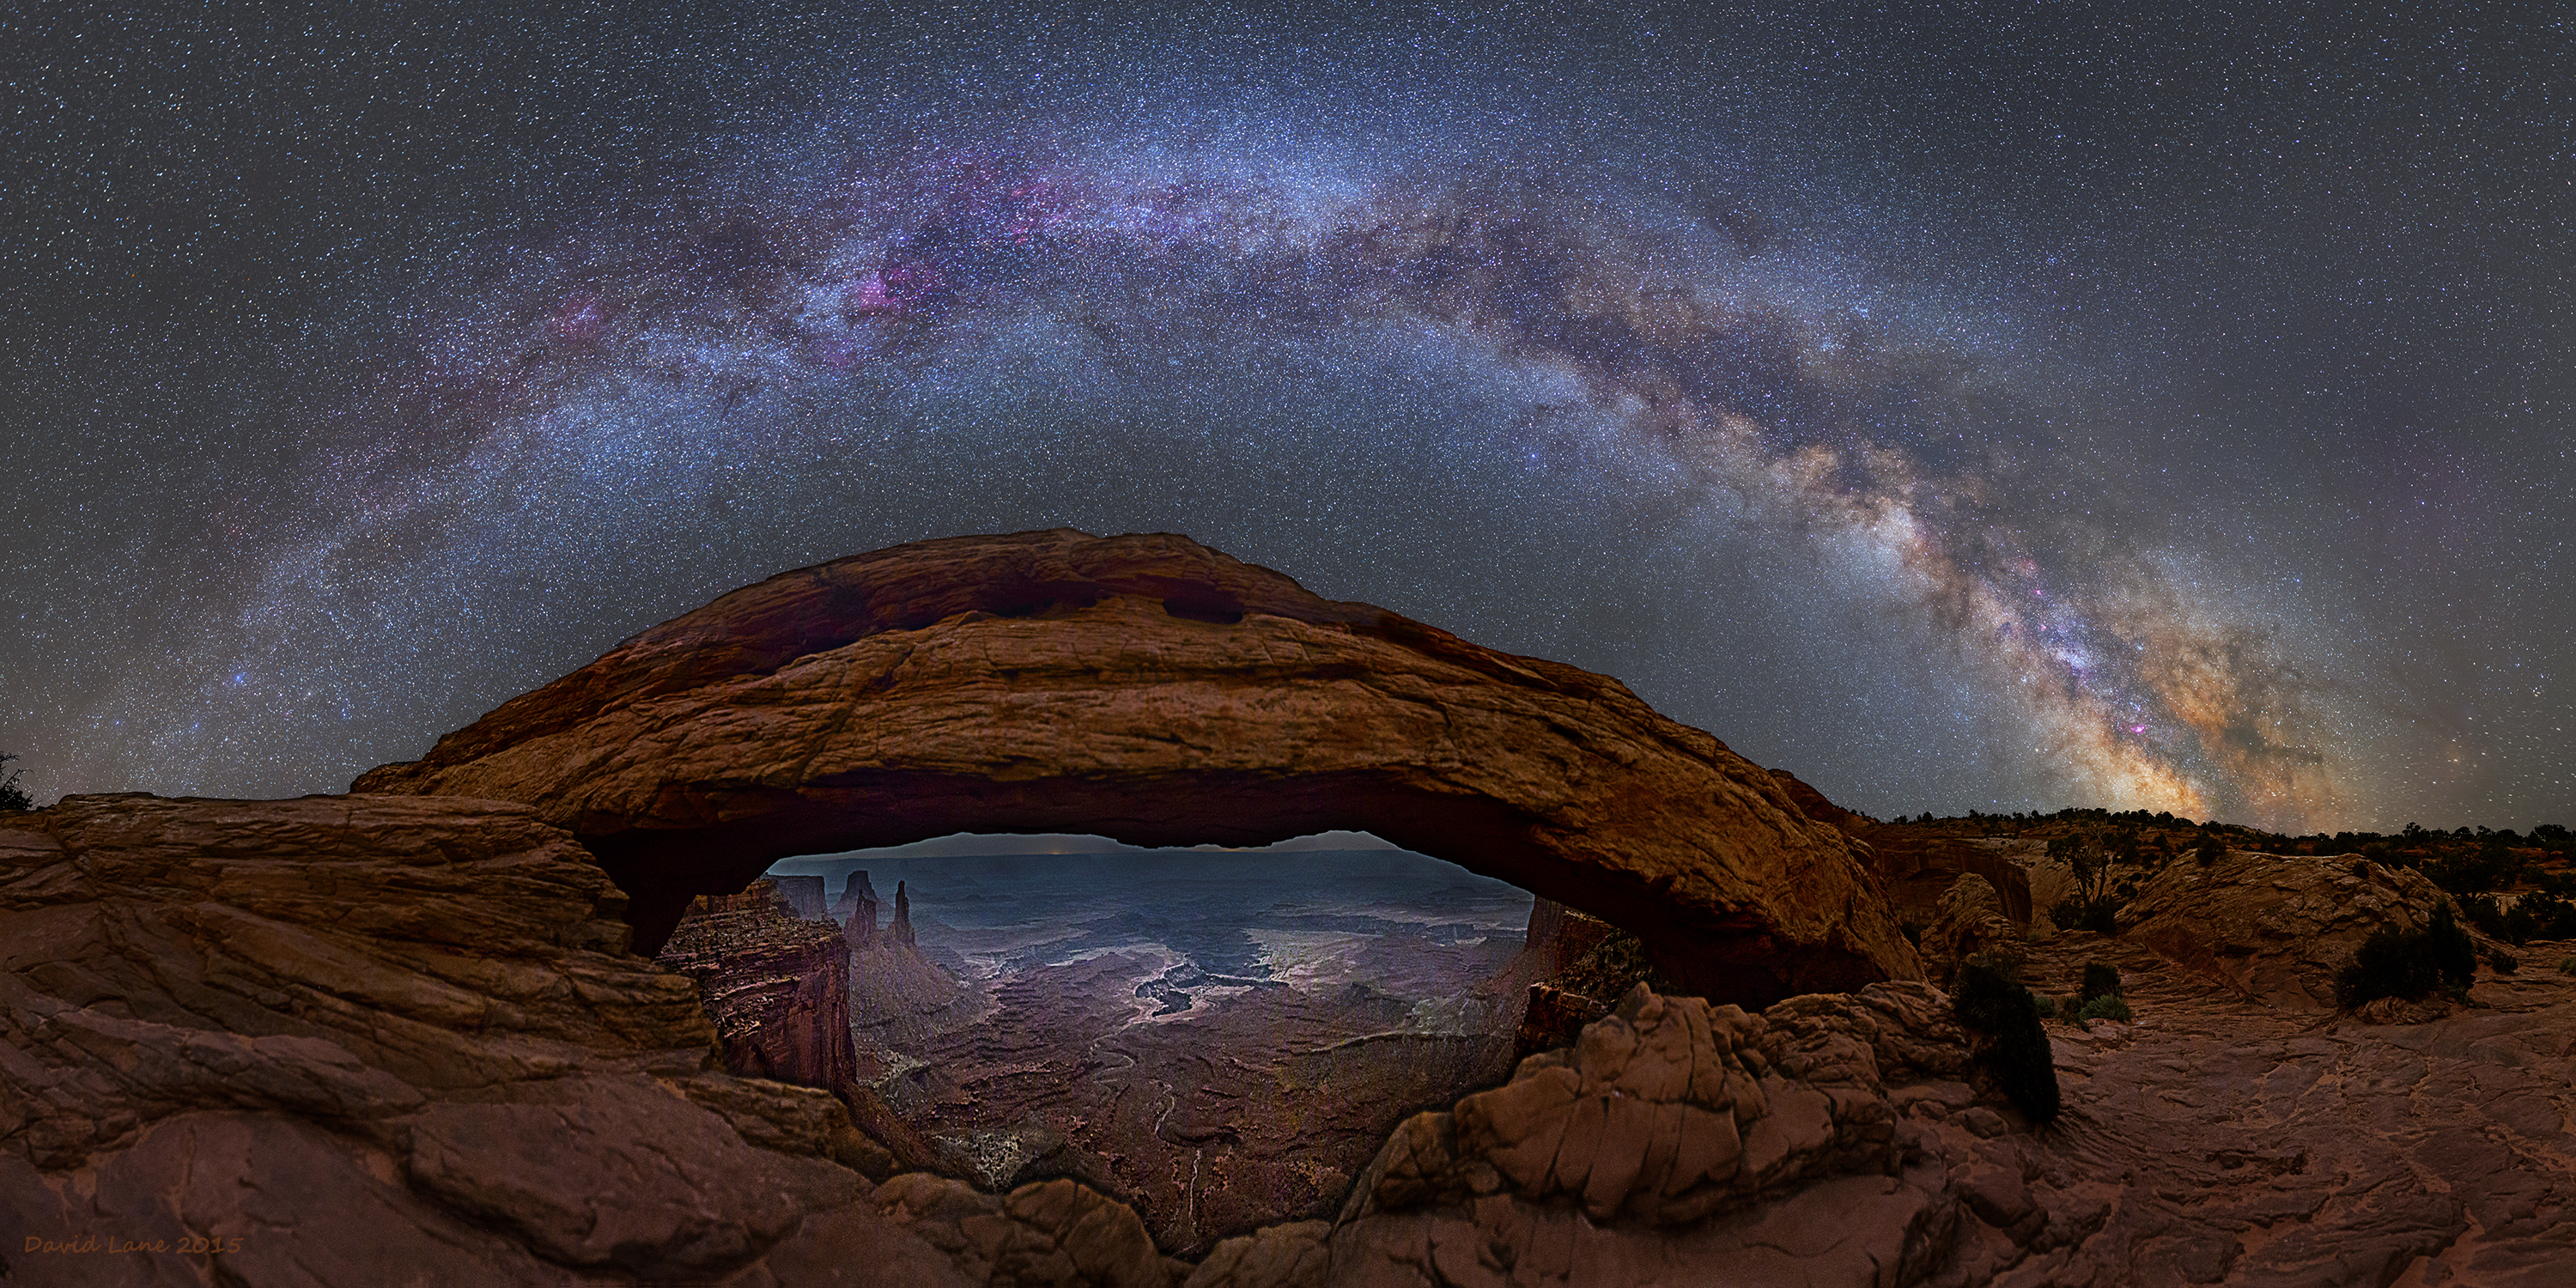 Craig Wolf Photography: Photographing Mesa Arch